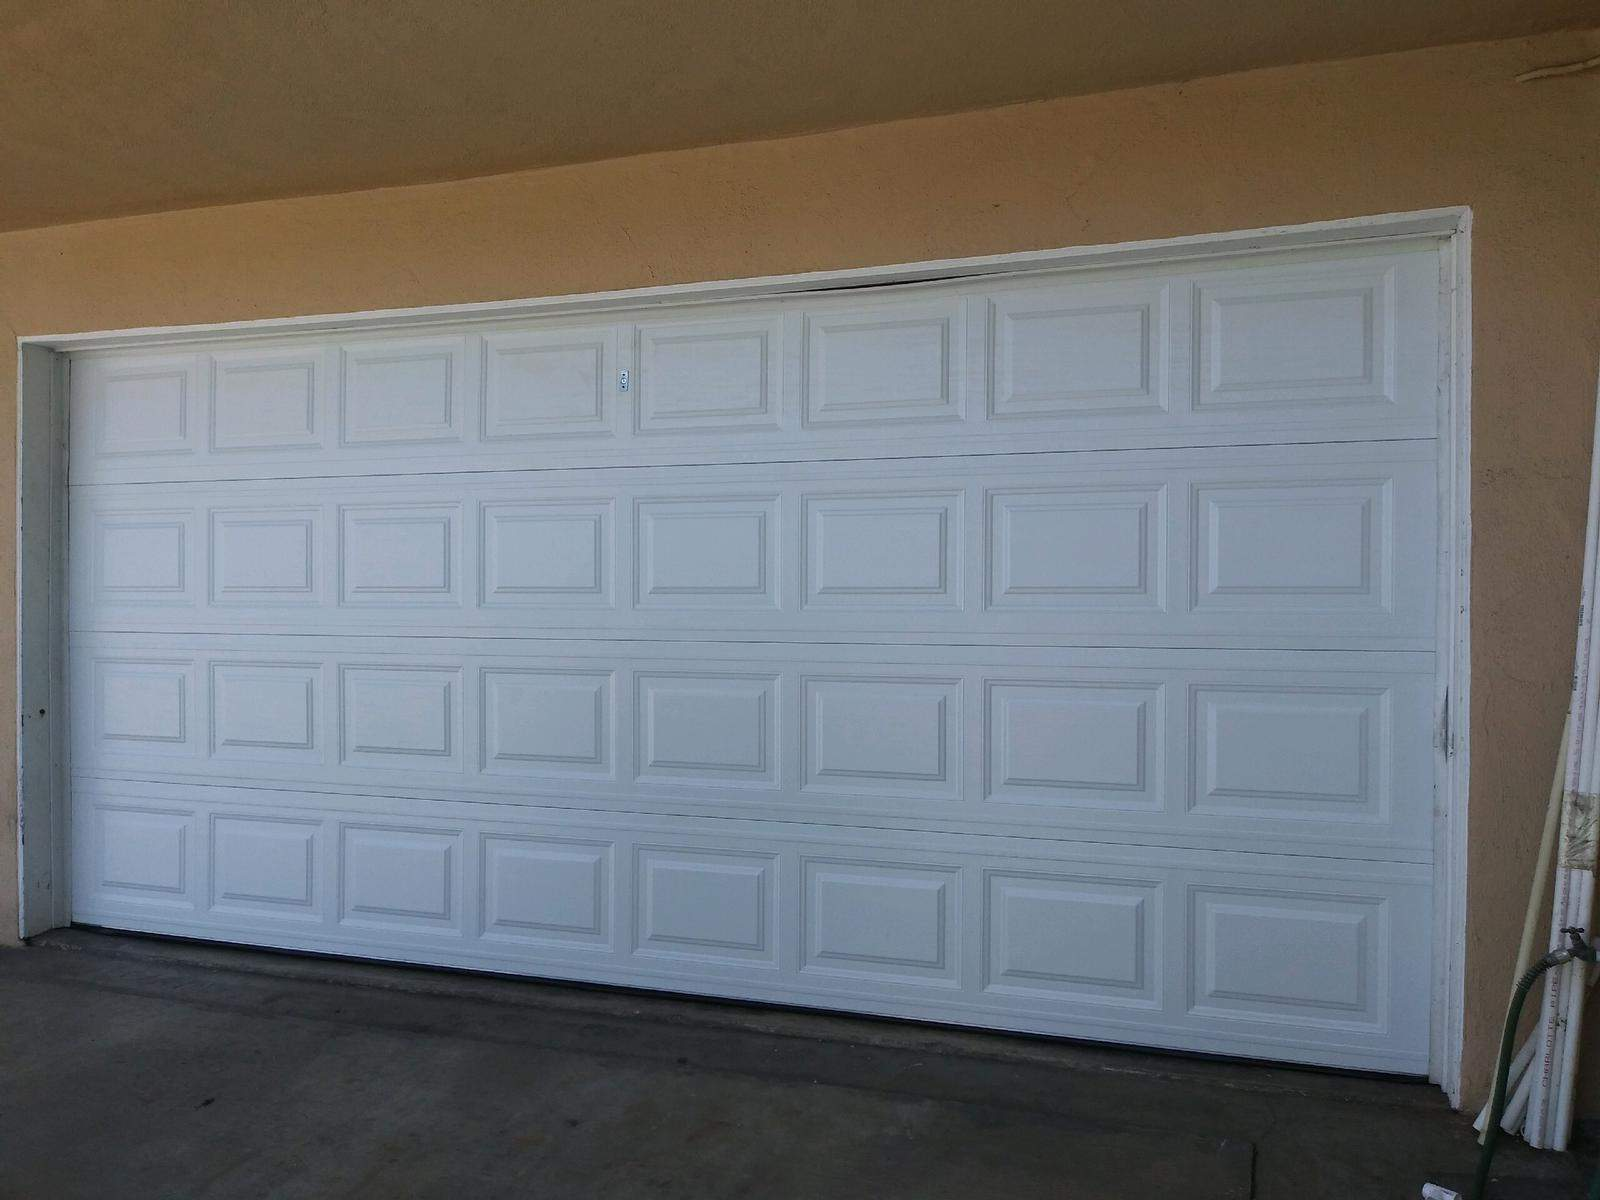 San Diego CA Garage Door Repair & Replacement